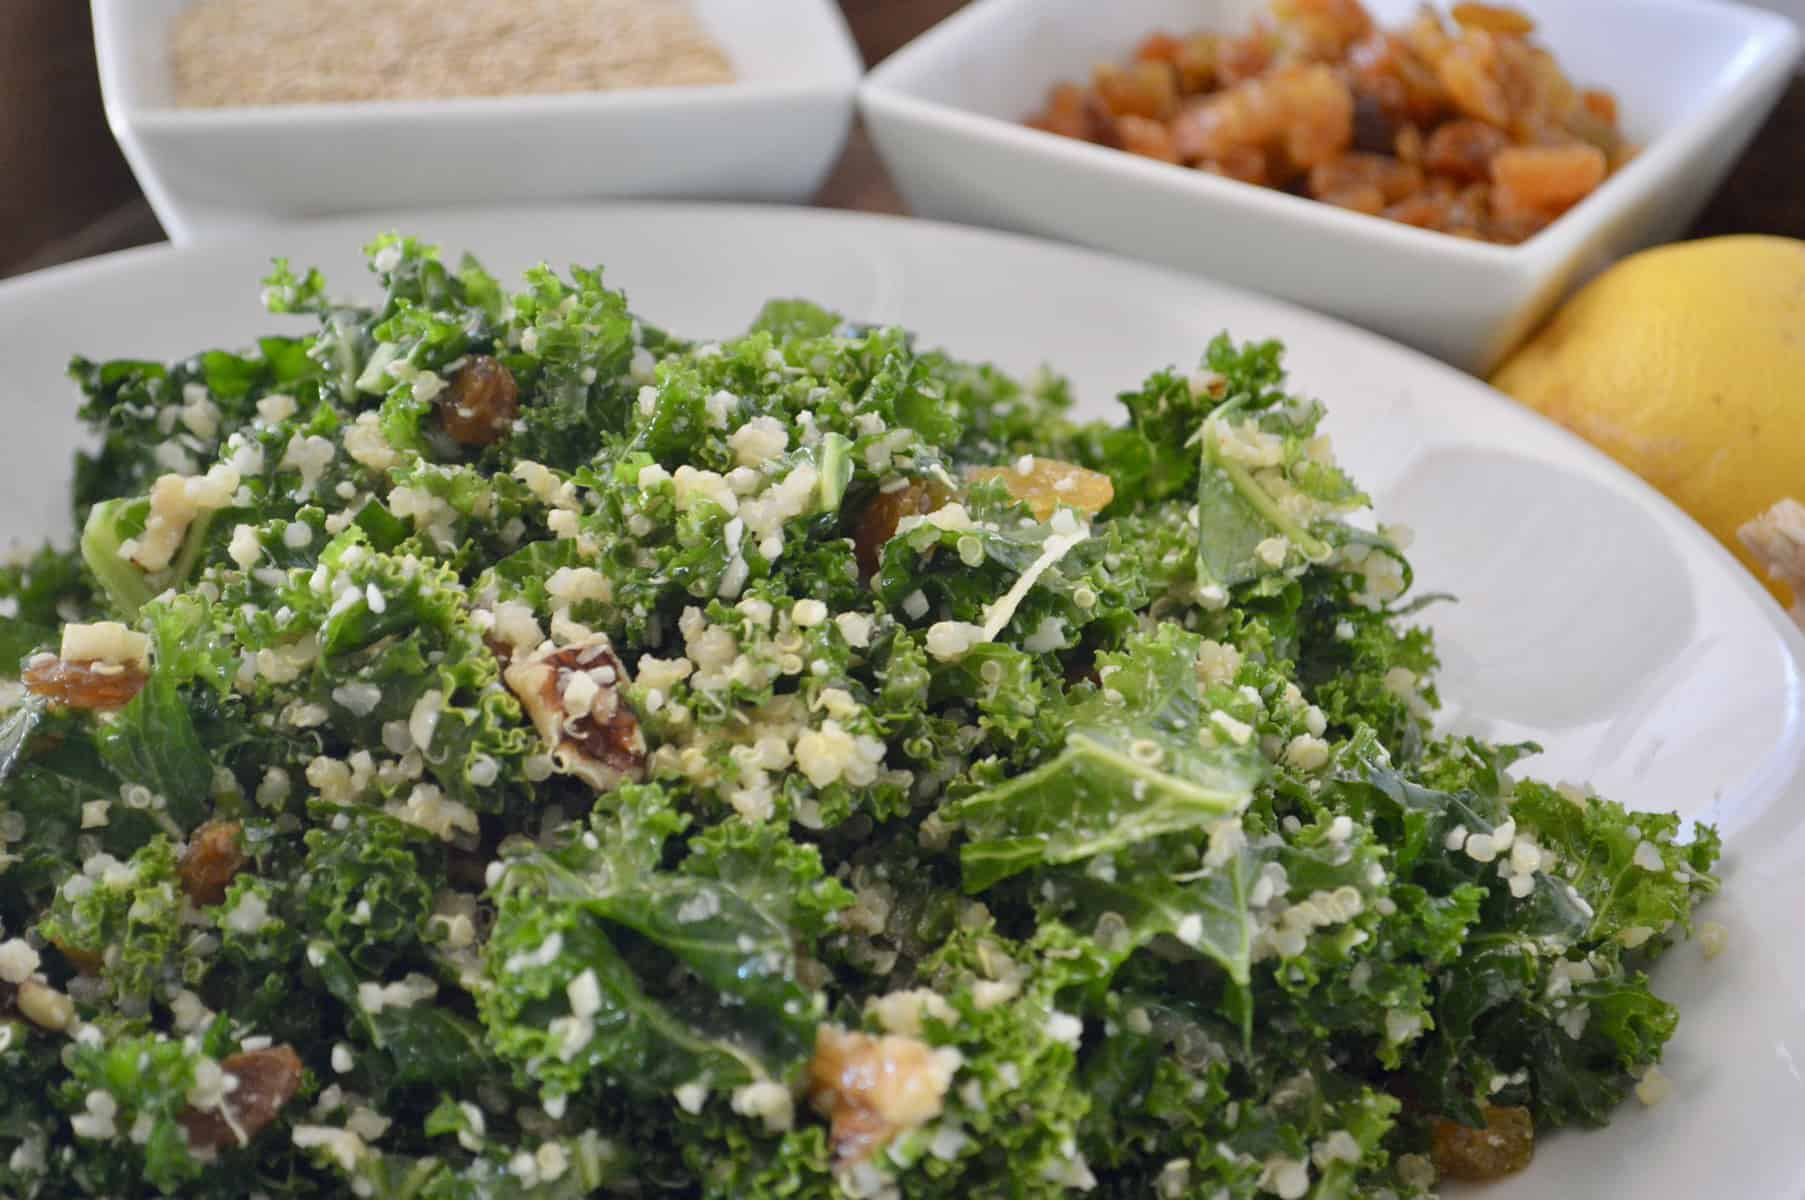 Kale Quinoa Salad with golden raisins and parmesan in a white serving bowl